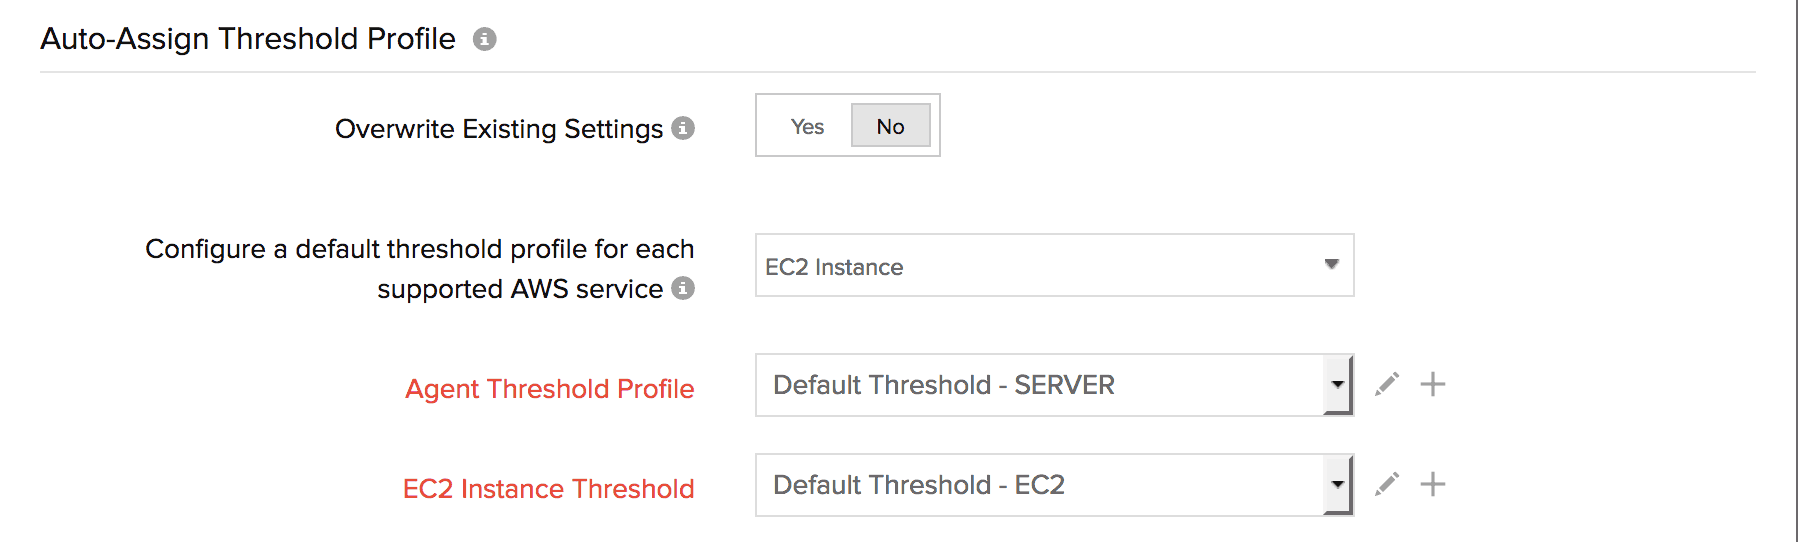 Auto assign threshold profile for EC2 instance